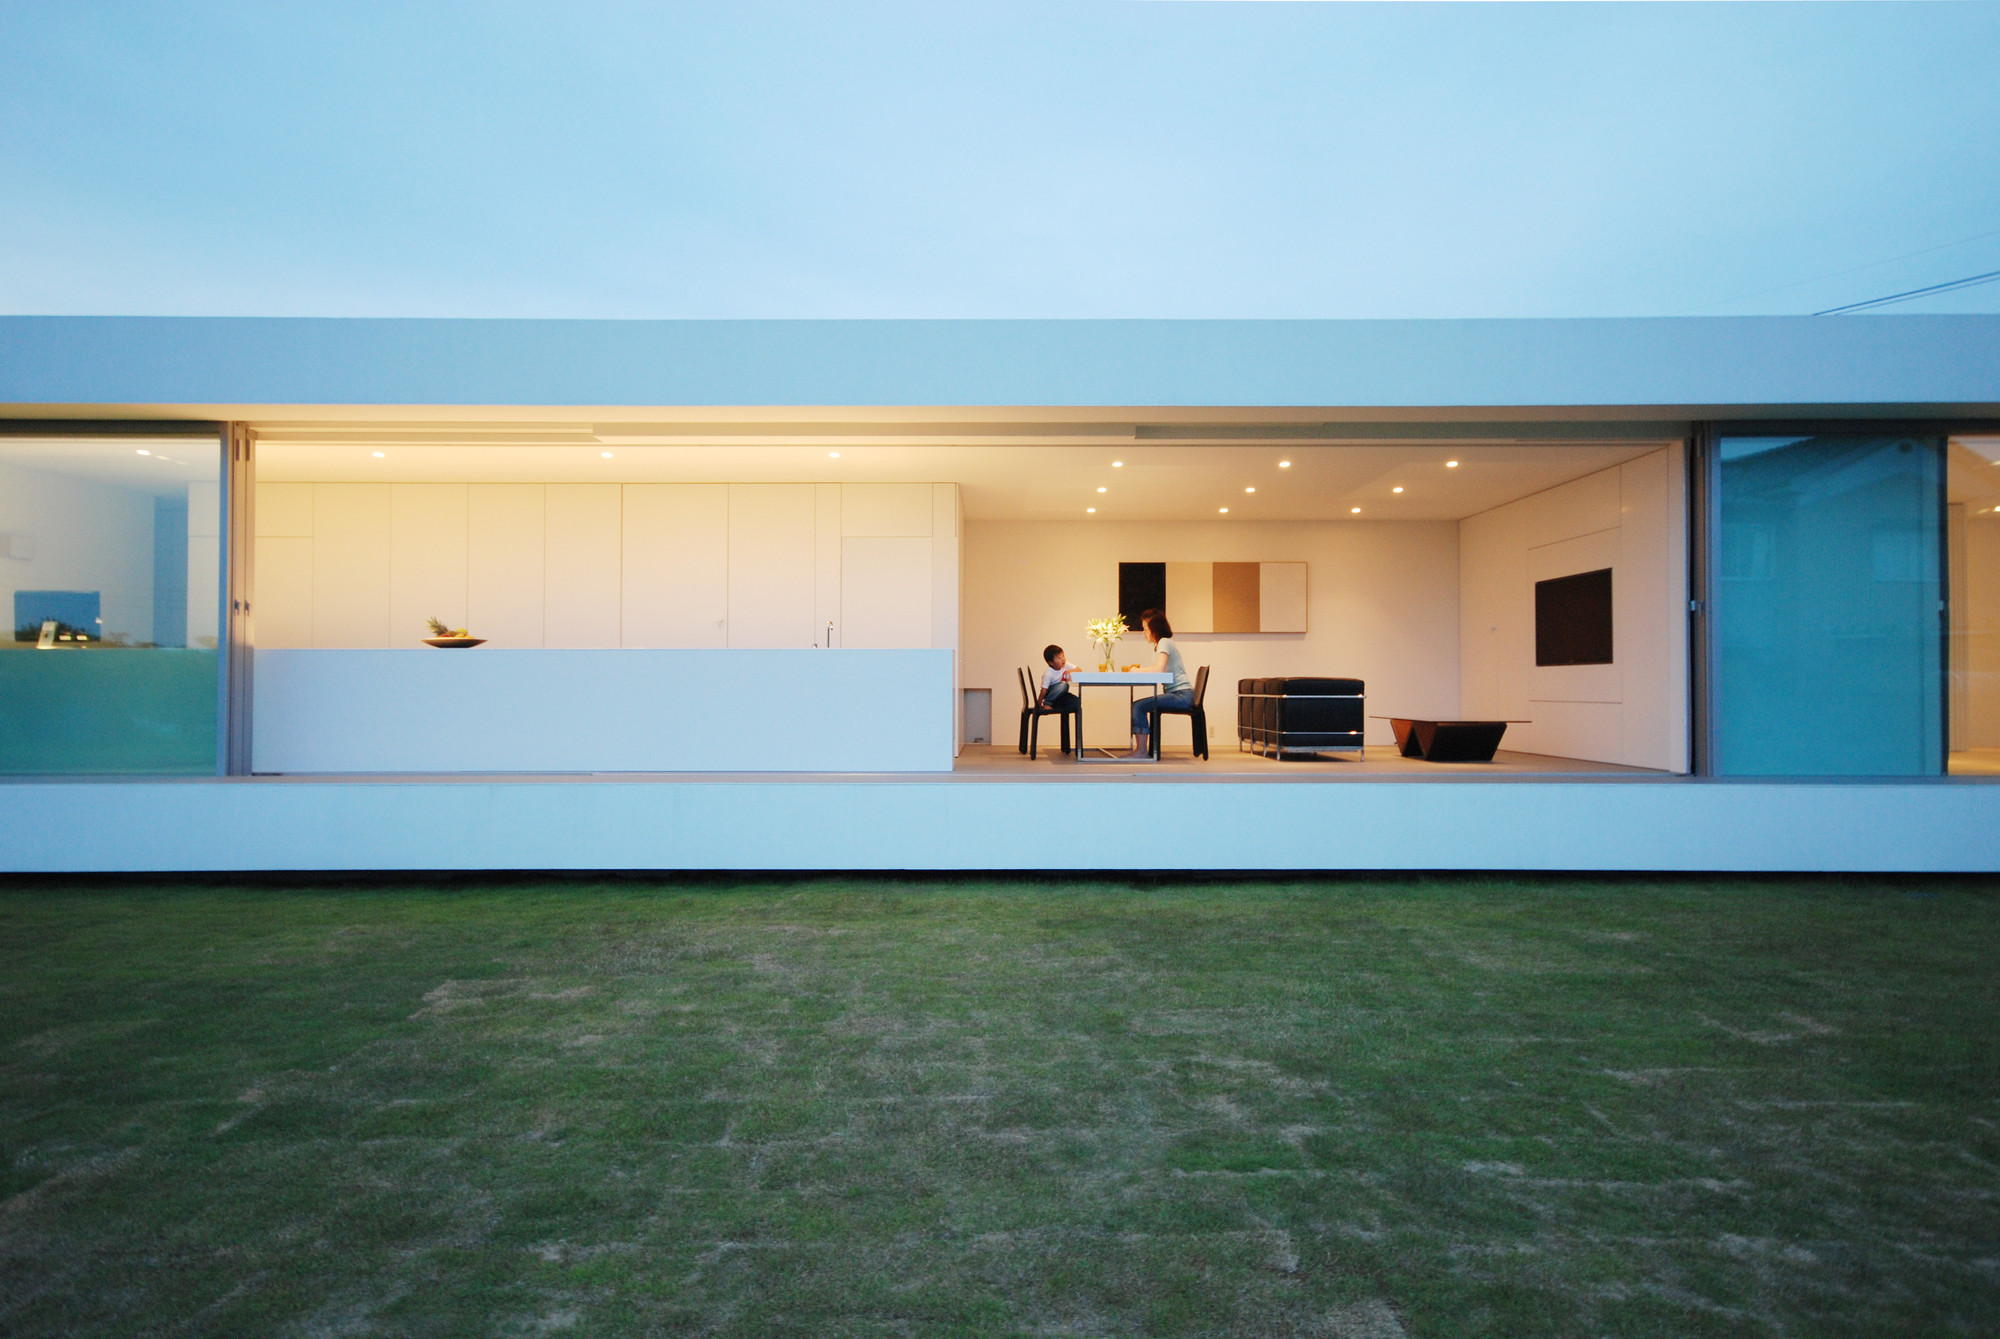 M Residence / Shinichi Ogawa & Associates, Courtesy of Shinichi Ogawa & Associates